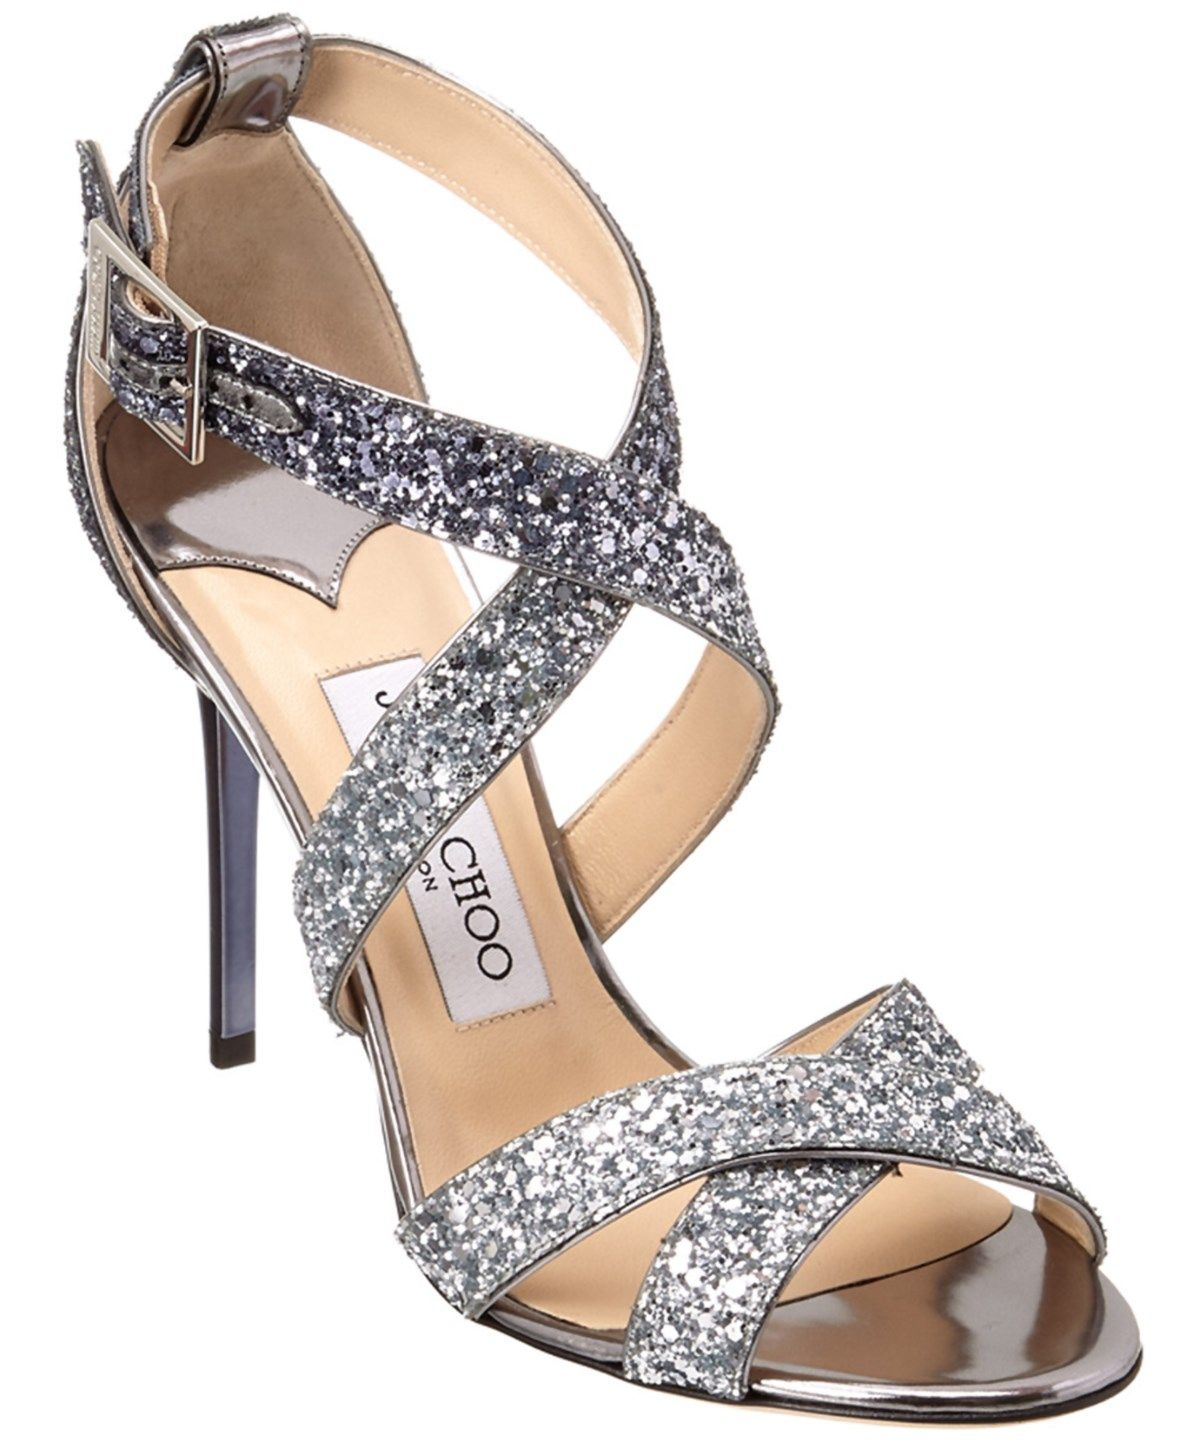 Jimmy Choo Lottie Coarse Glitter Degrade Sandal' In Metallic